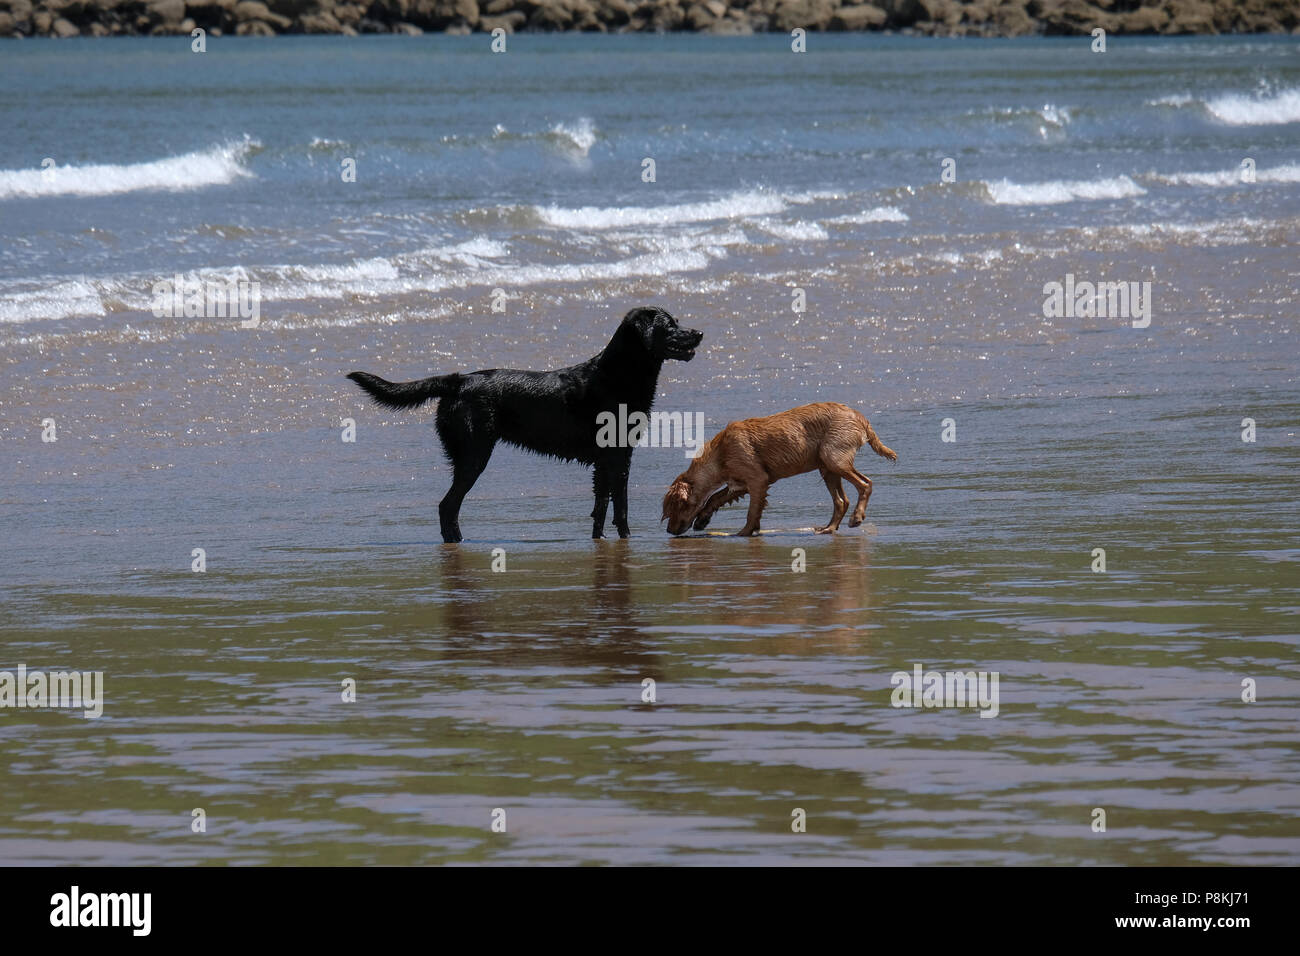 Two dogs playing with seaweed on the beach at North Bay, Scarborough North Yorkshire - Stock Image